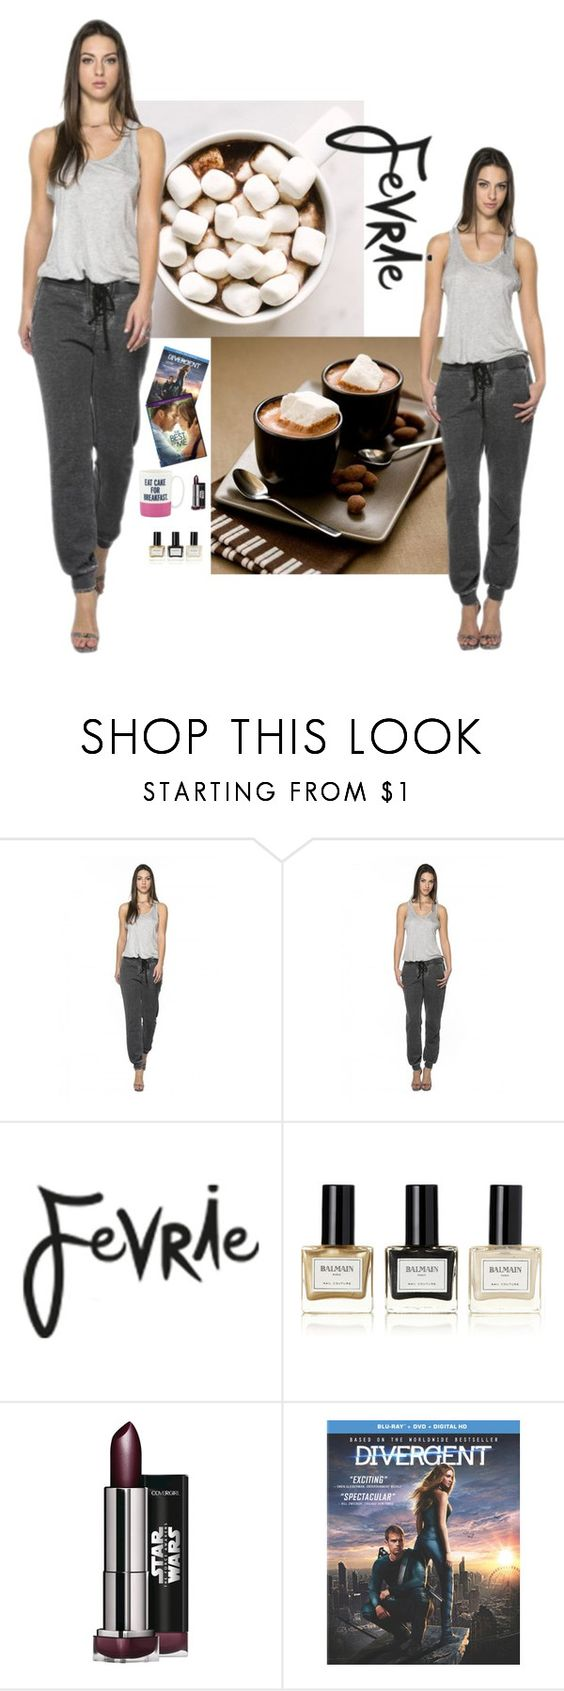 """The Billie Jogger"" by fevriefashion ❤ liked on Polyvore featuring Fevrie, Balmain and Kate Spade"